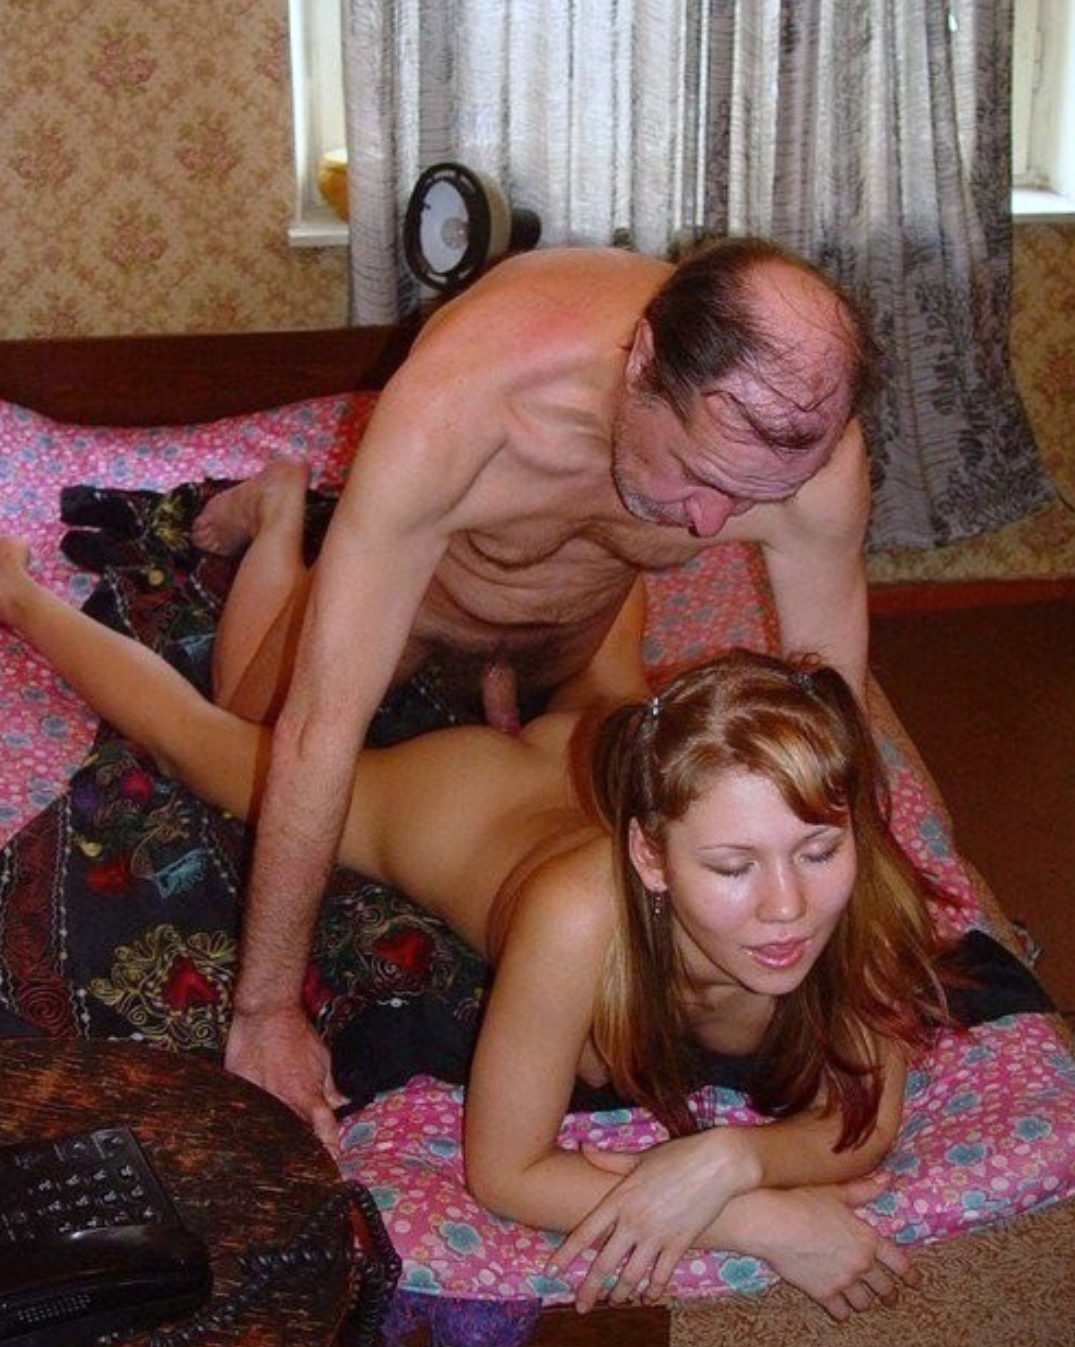 Mom and friends daughter get banged and father friends daughter hidden